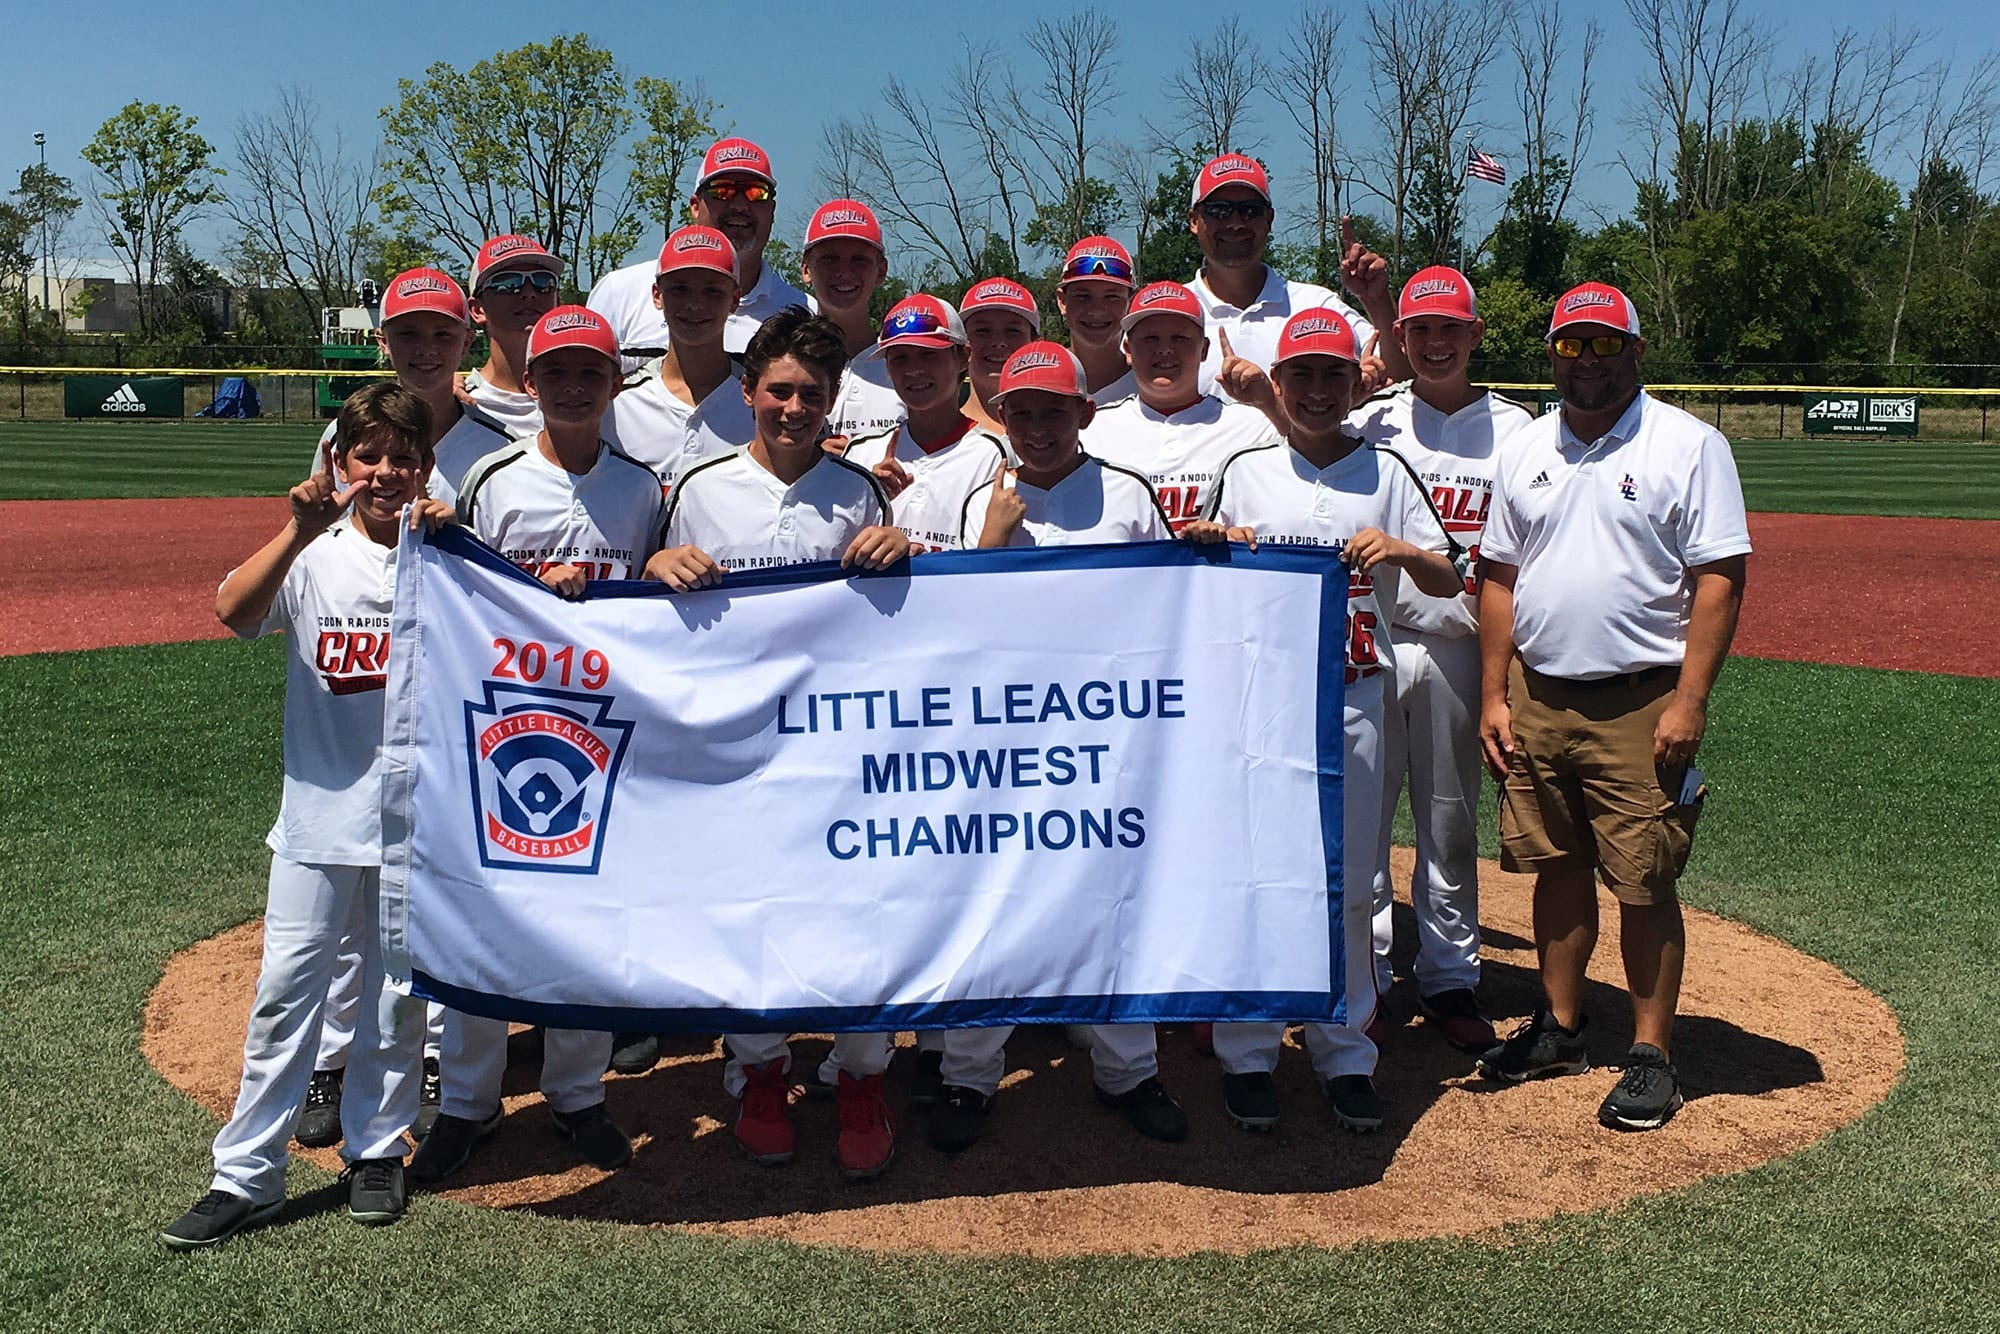 llb-midwest-champs-2019